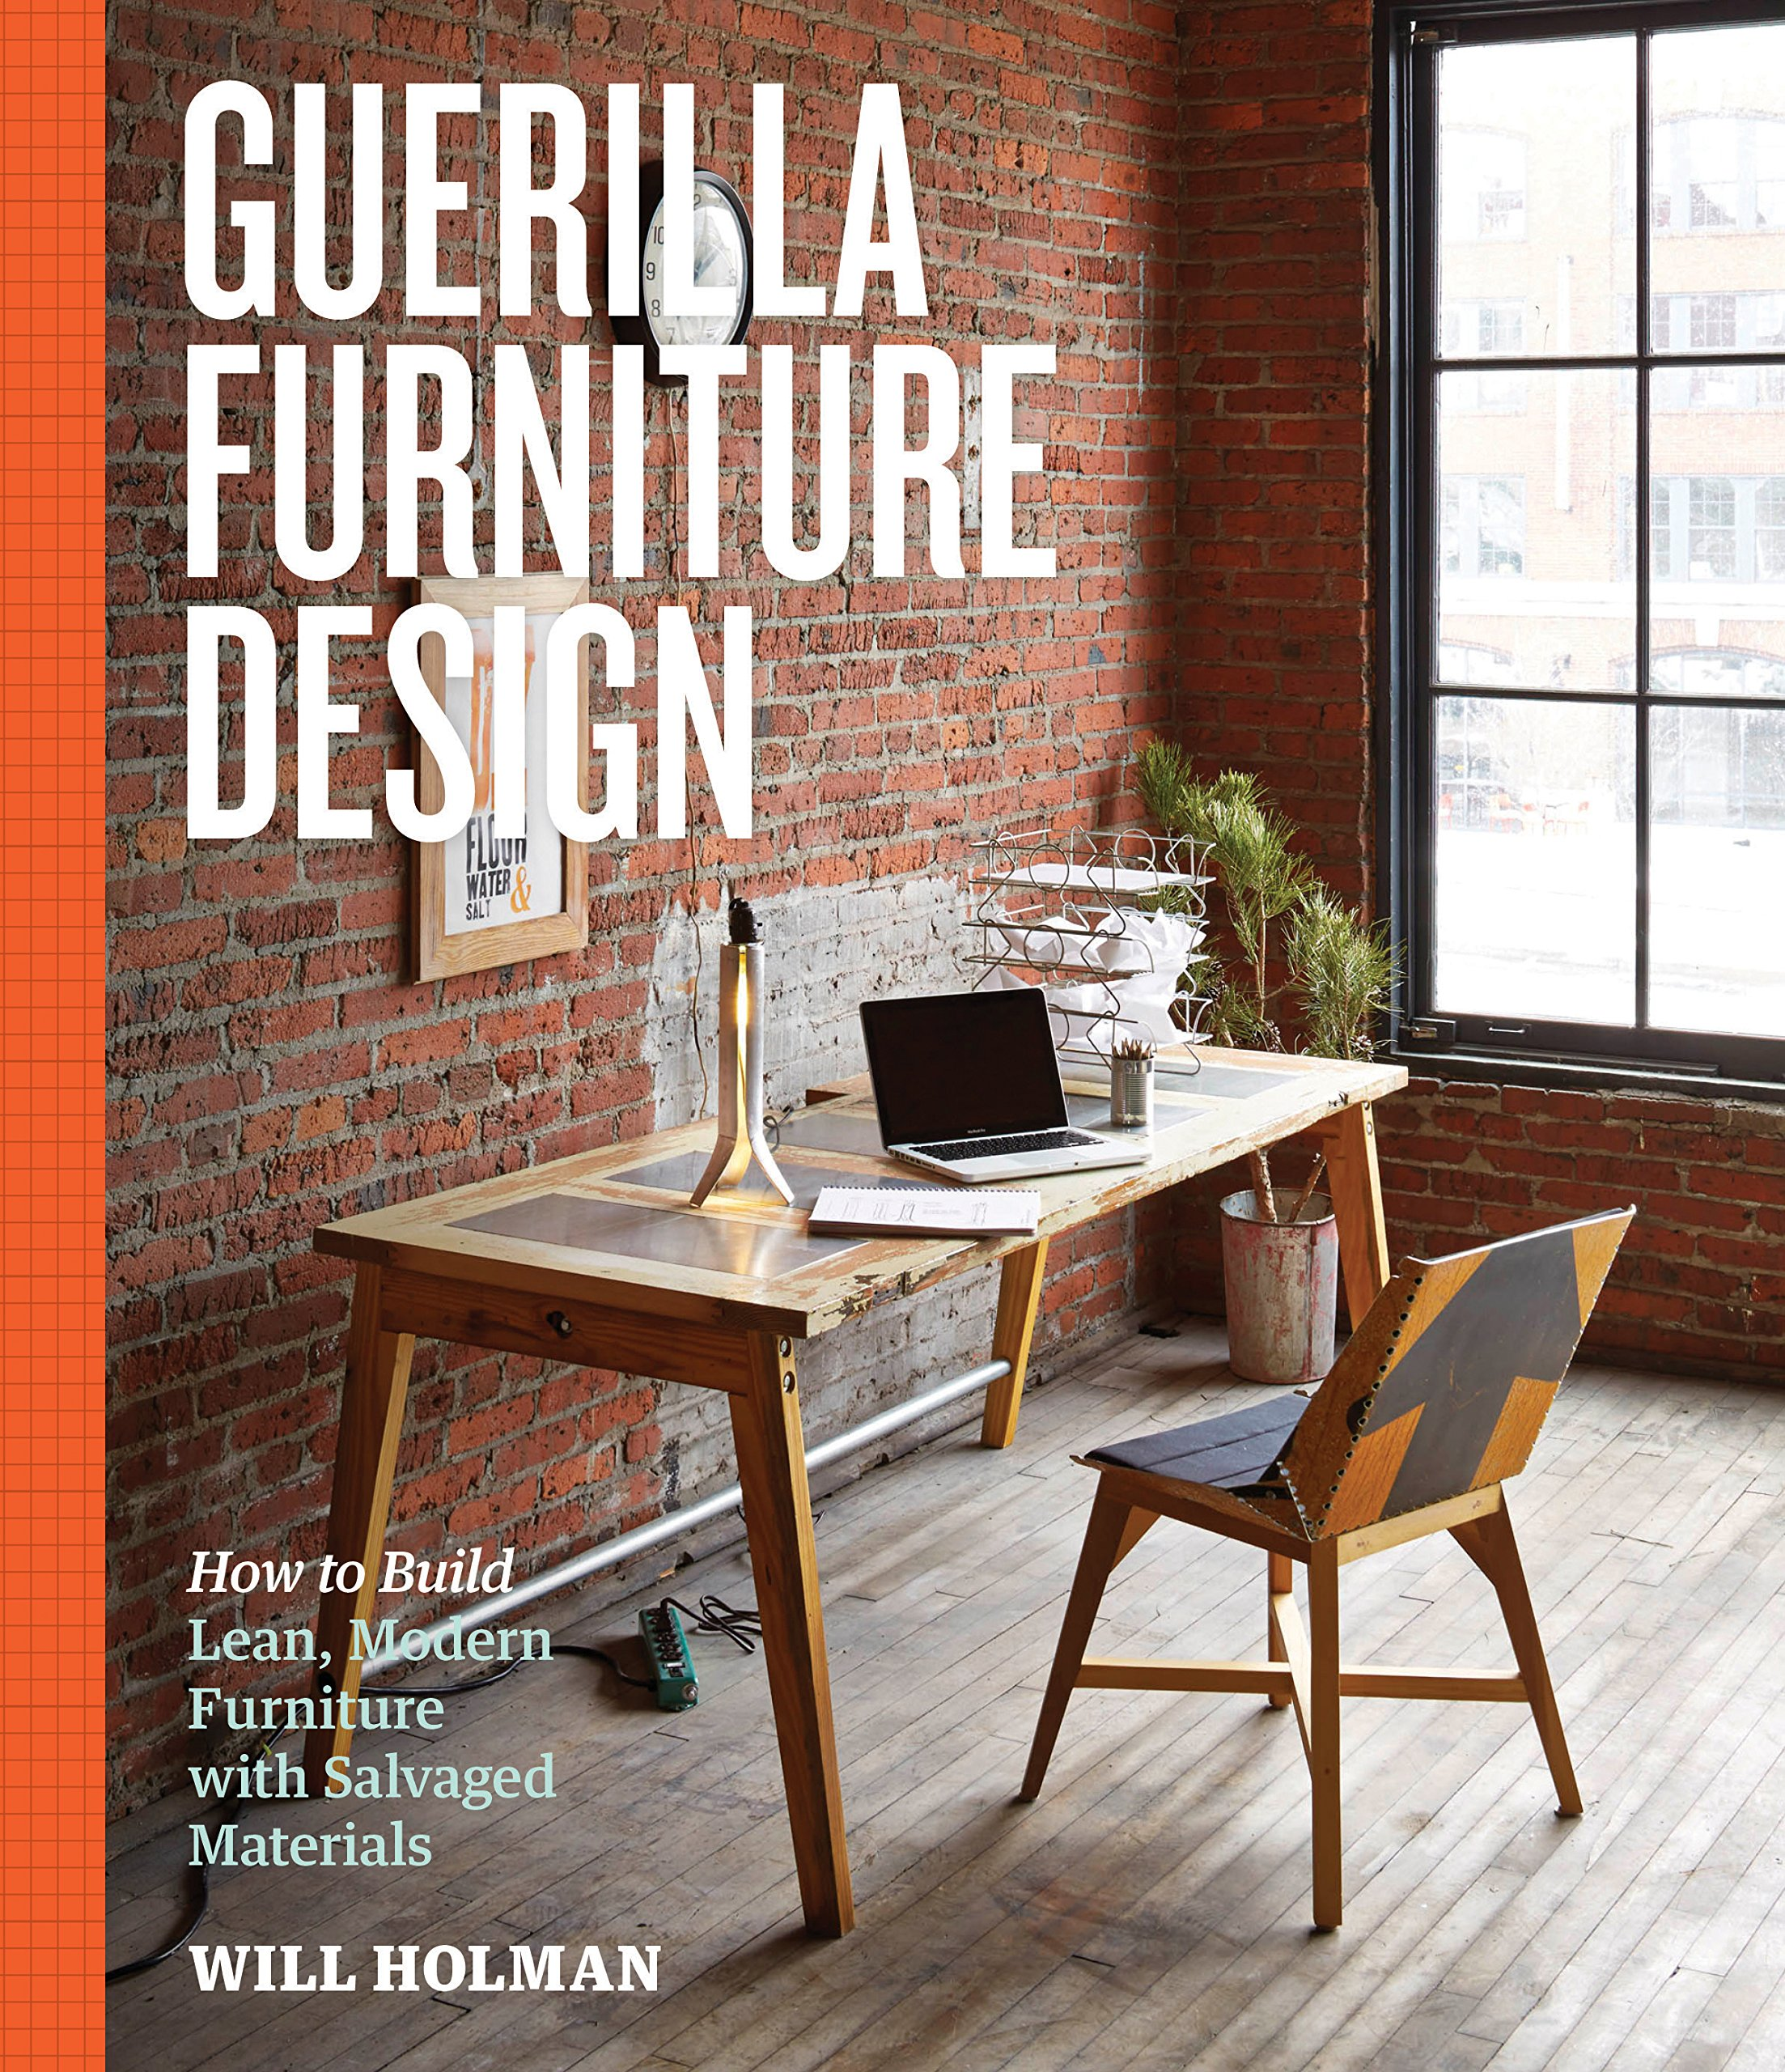 Merveilleux Guerilla Furniture Design: How To Build Lean, Modern Furniture With  Salvaged Materials: Will Holman: 9781612123035: Amazon.com: Books